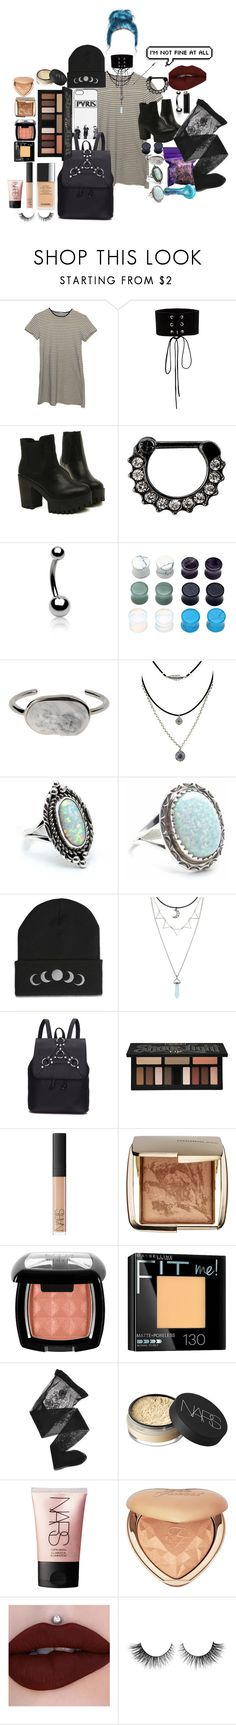 """Stop there and let me correct it,i want to live a life from new perspective"" by headbangingunicorn ❤ liked on Polyvore featuring Manokhi, Bling Jewelry, Balenciaga, Hot Topic, Kat Von D, NARS Cosmetics, Hourglass Cosmetics, Maybelline, Emporio Armani and Too Faced Cosmetics"